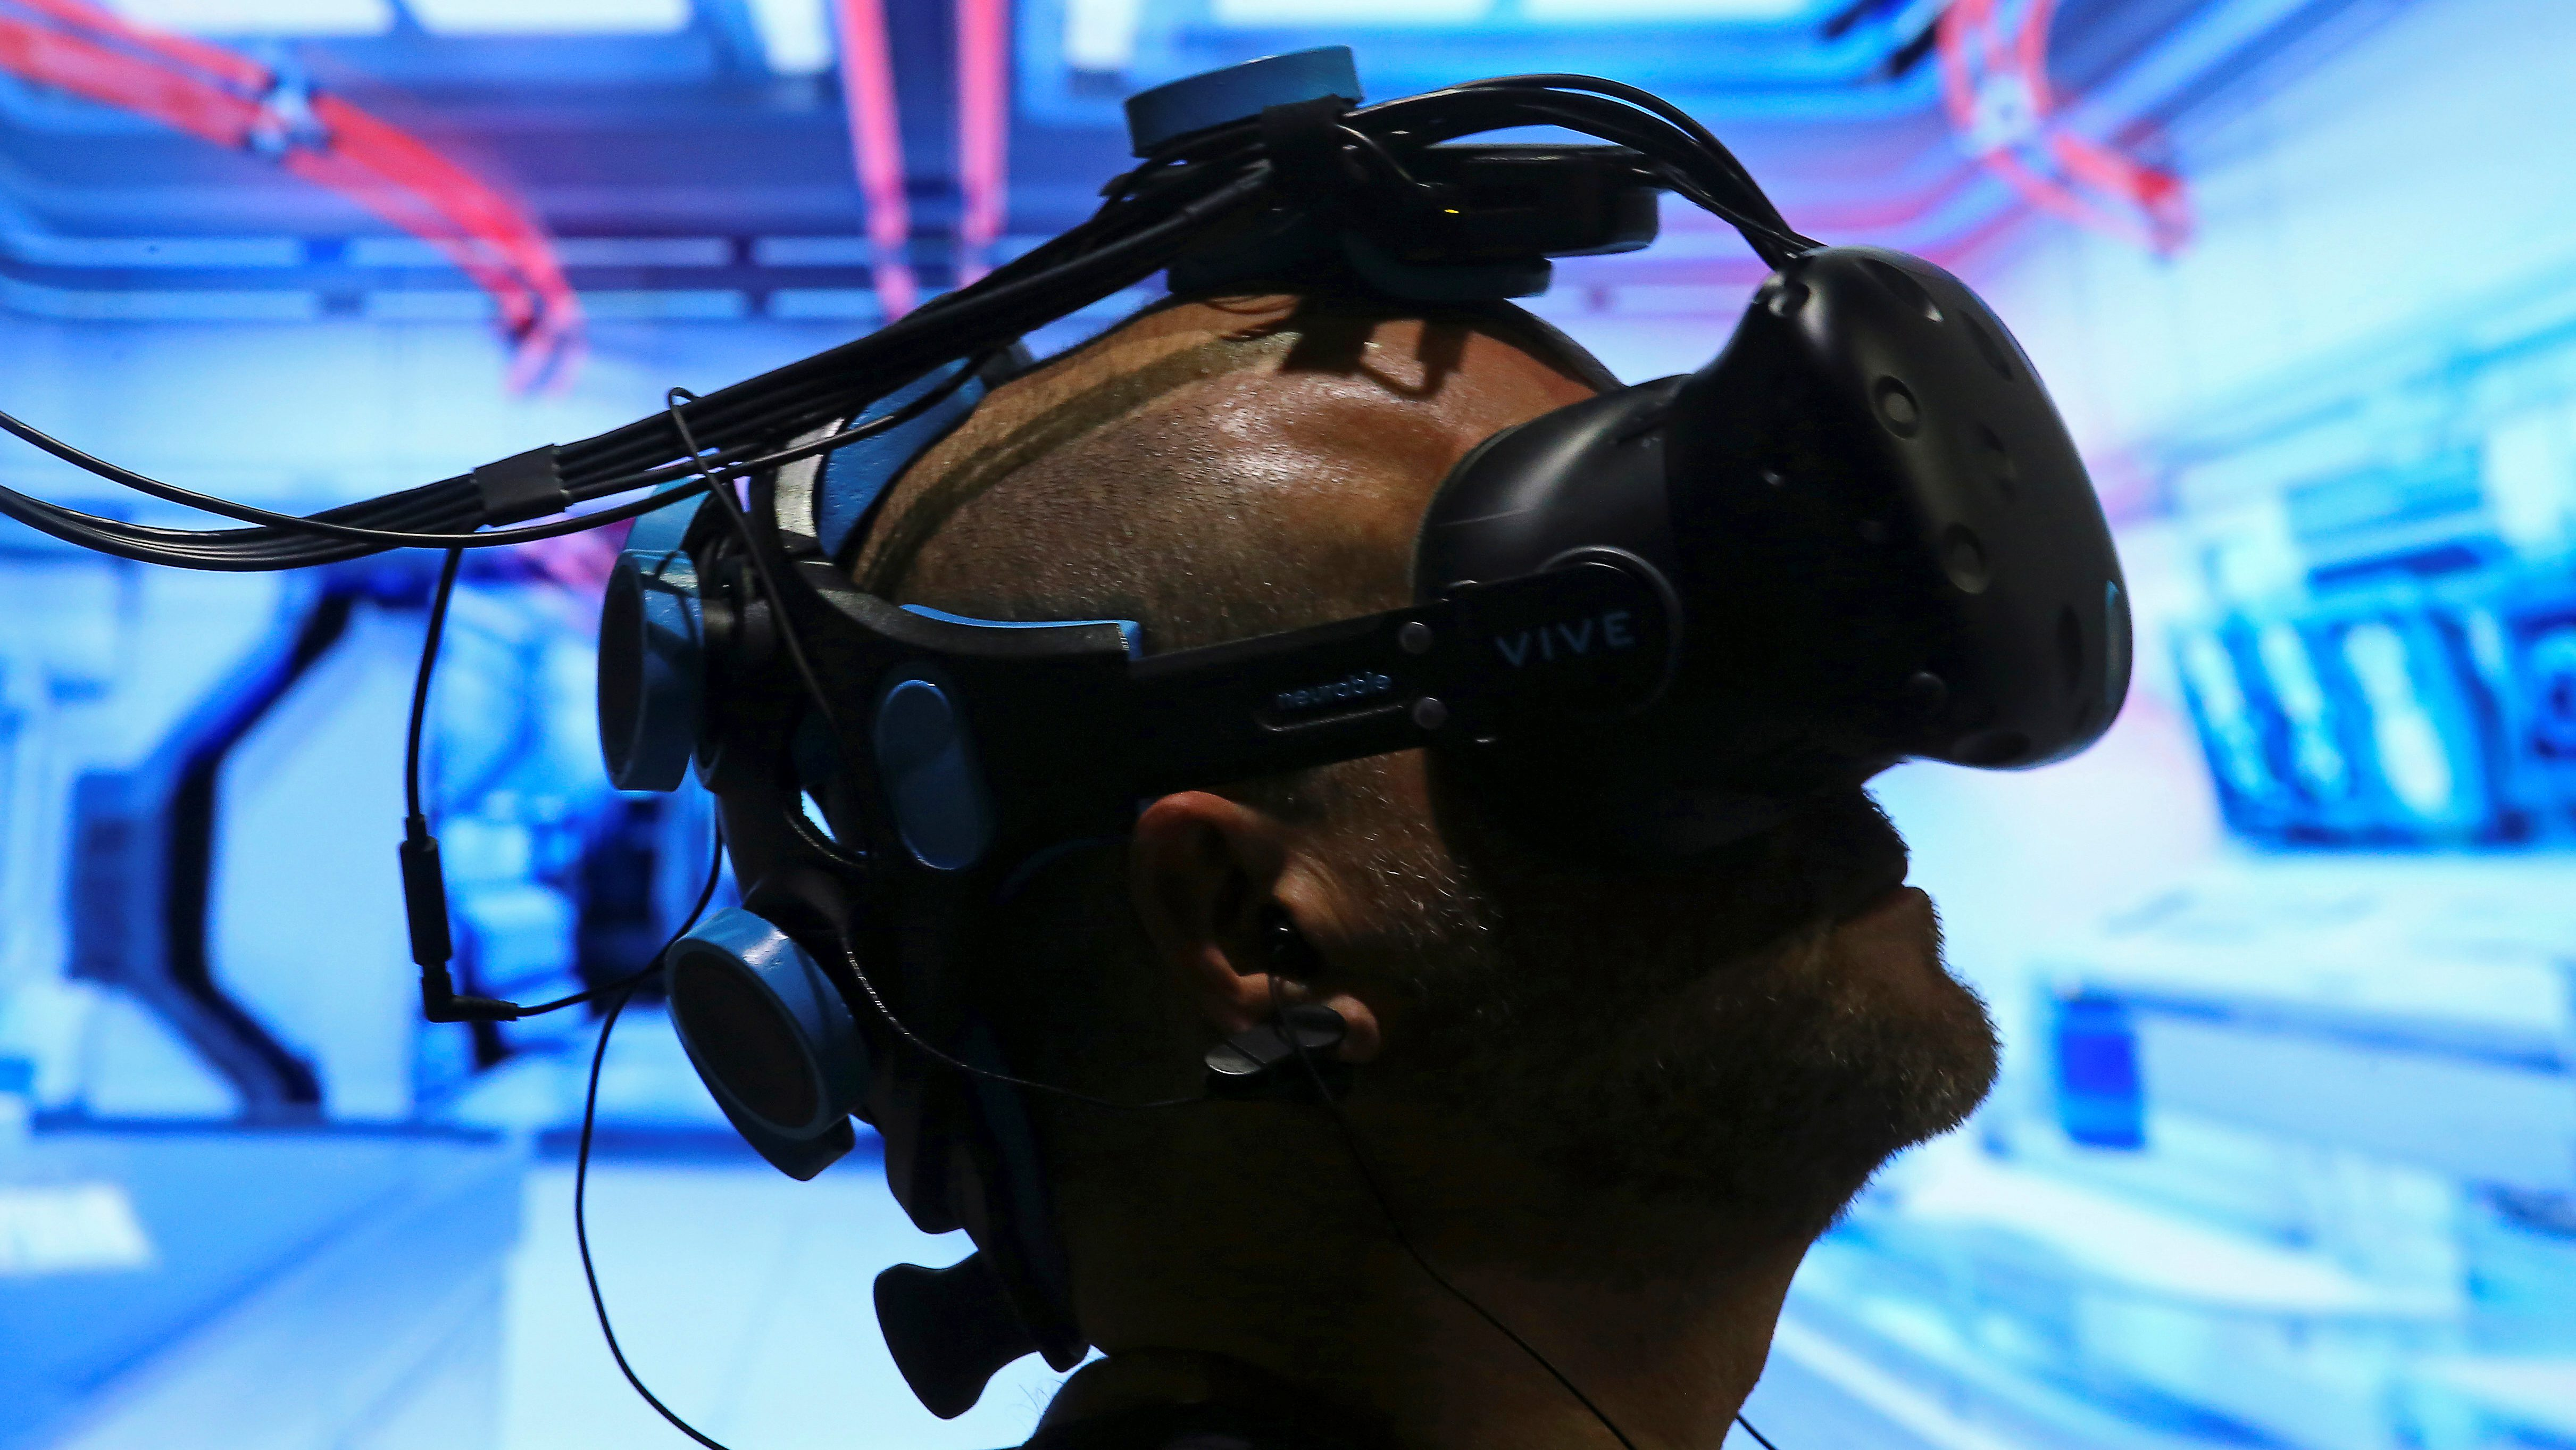 Pablo Holcer tests out a virtual reality system made by Neurable that allows the user to control with their thoughts as the EEG headset interprets thoughts into actions in the VR environment at SIGGRAPH 2017 in Los Angeles, California U.S. July 31, 2017.